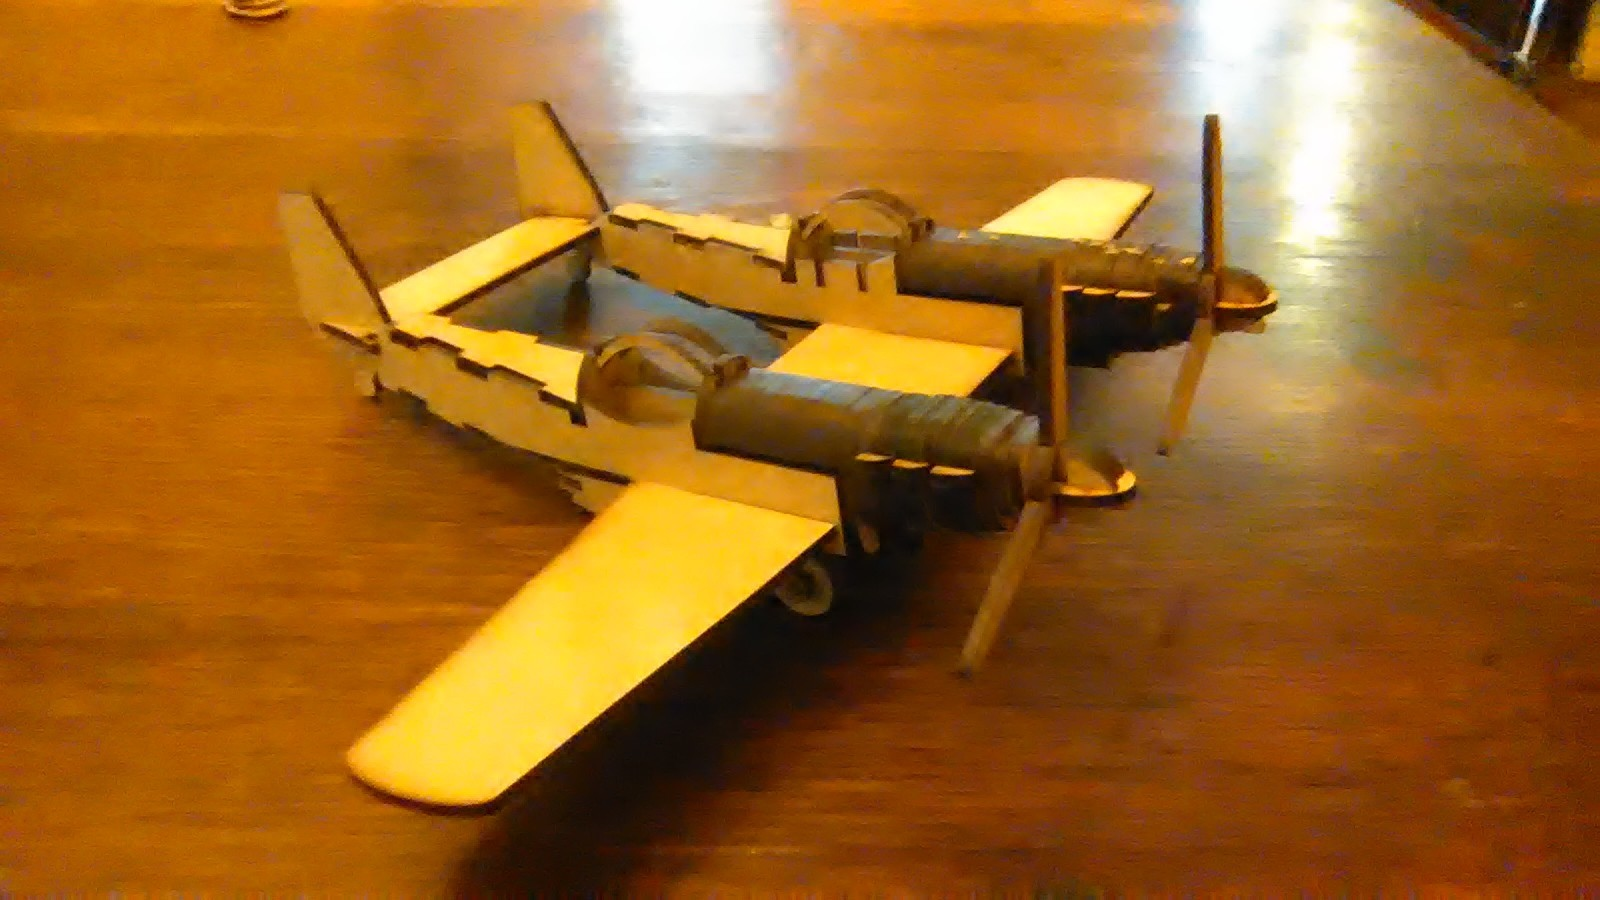 Laser Cut Wooden Twin Mustang Double Propeller Plane Template Free DXF File